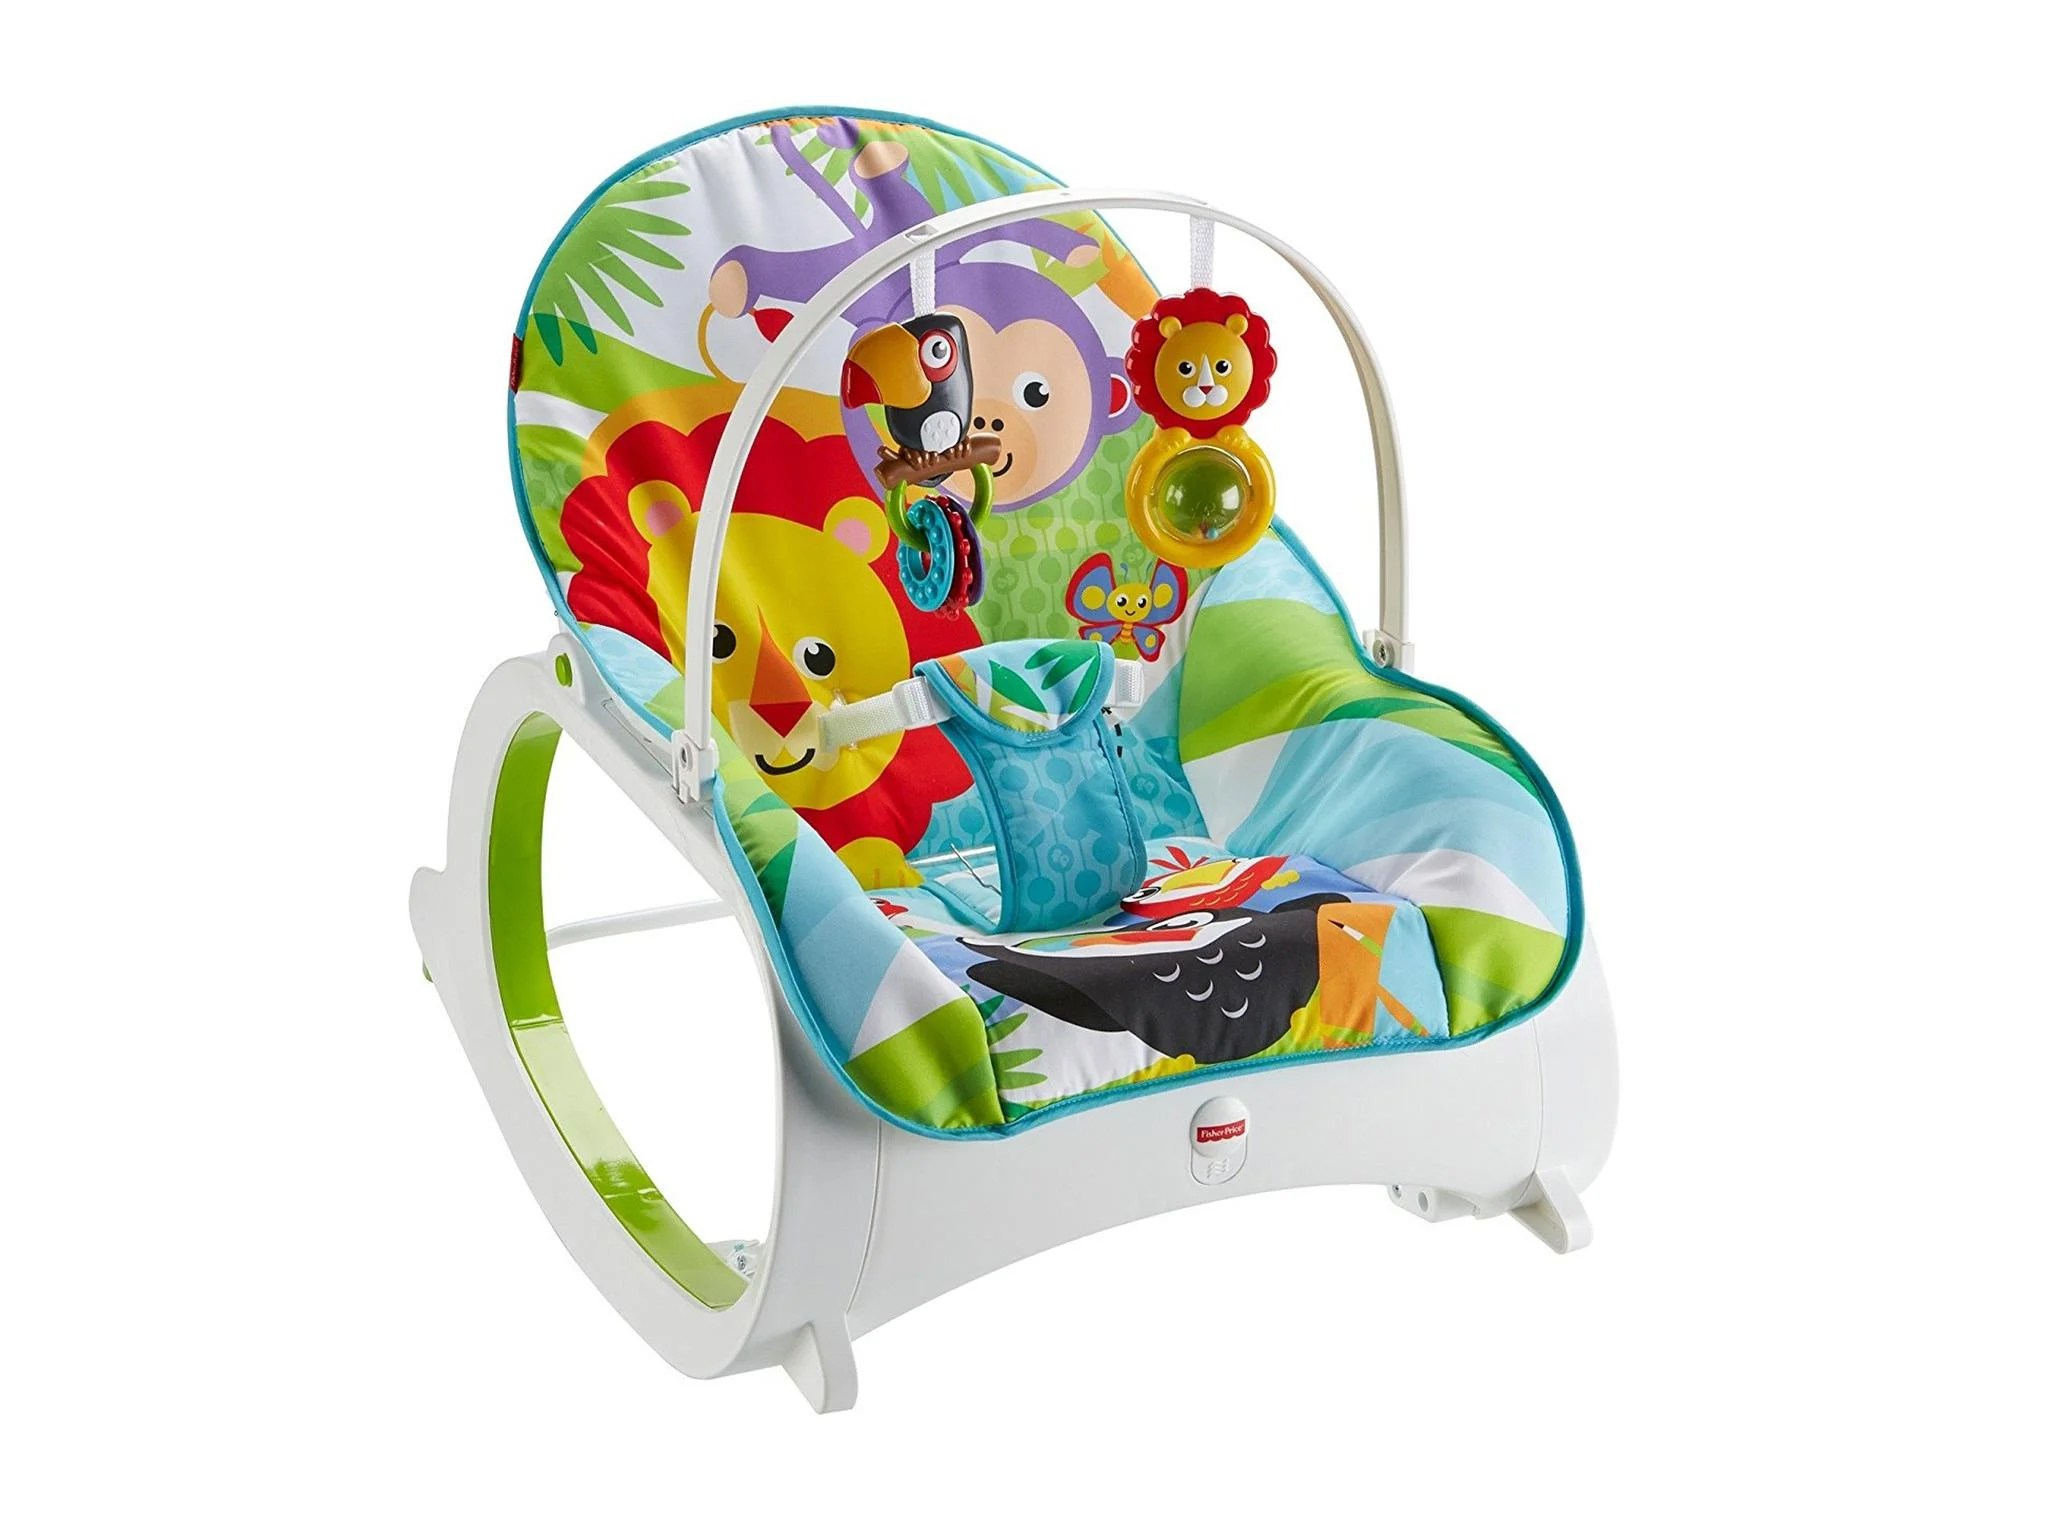 baby sleeping chair swing olx lahore 8 best bouncers the independent fisher price infant to toddler rocker 63 80 amazon